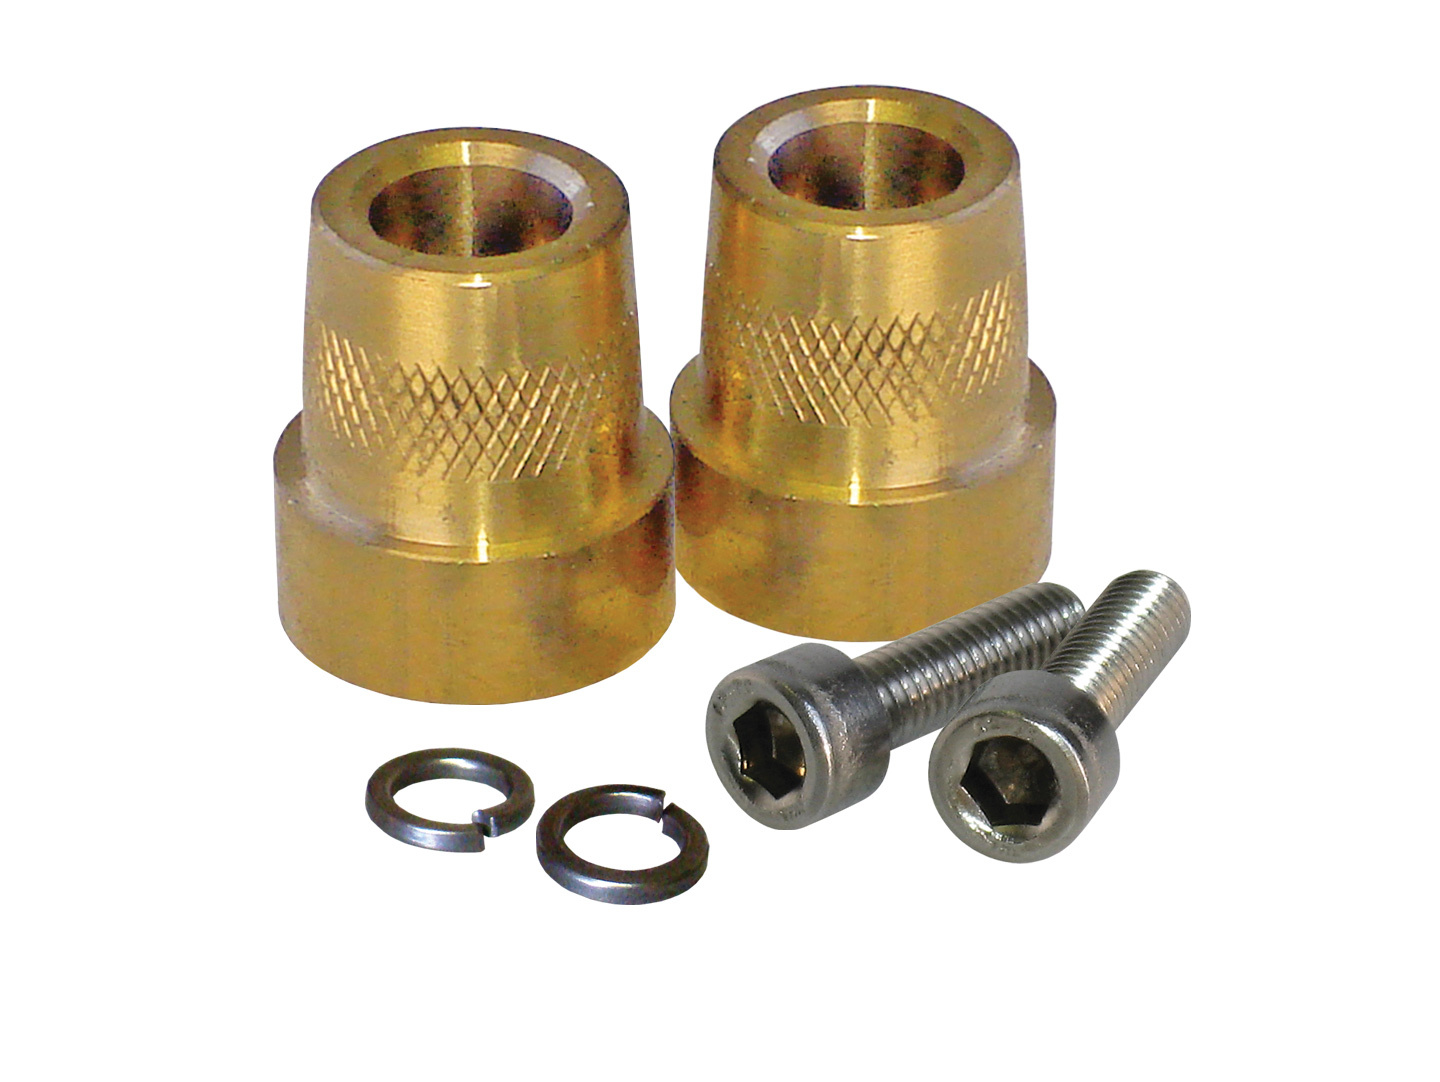 Tall Brass Post Adaptors 6mm